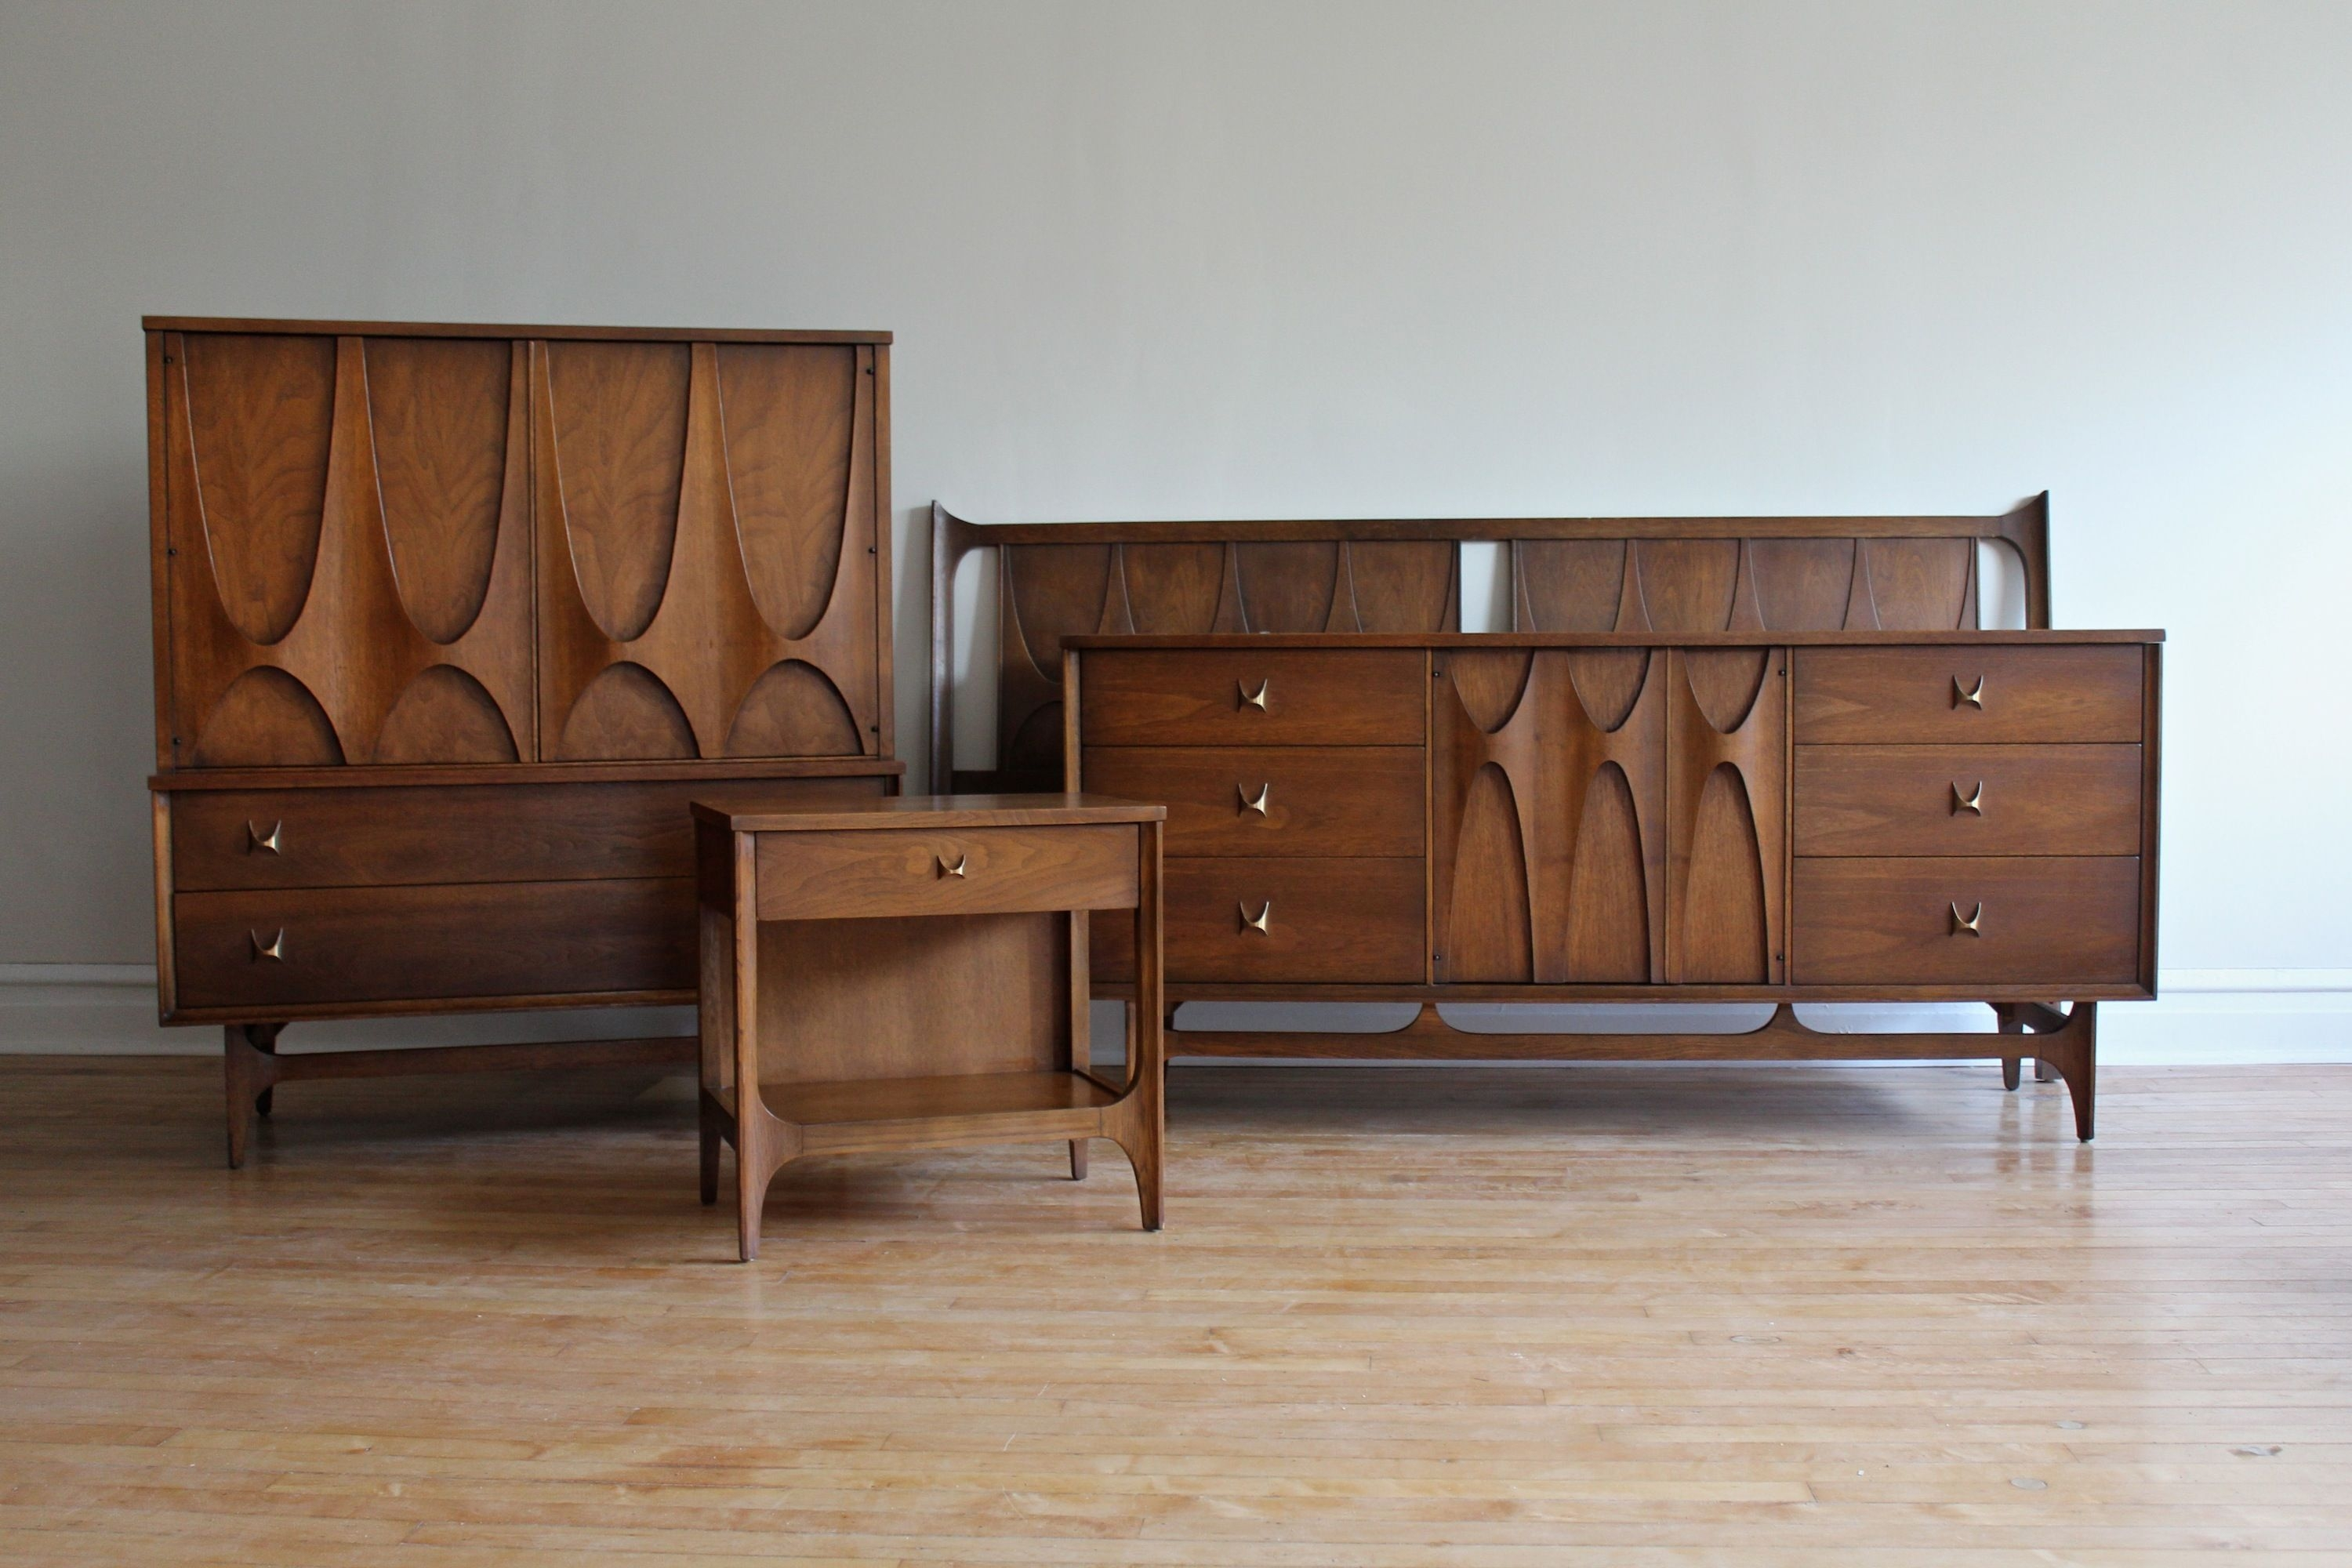 Inspiring Mid Century Furniture Ideas To Try28